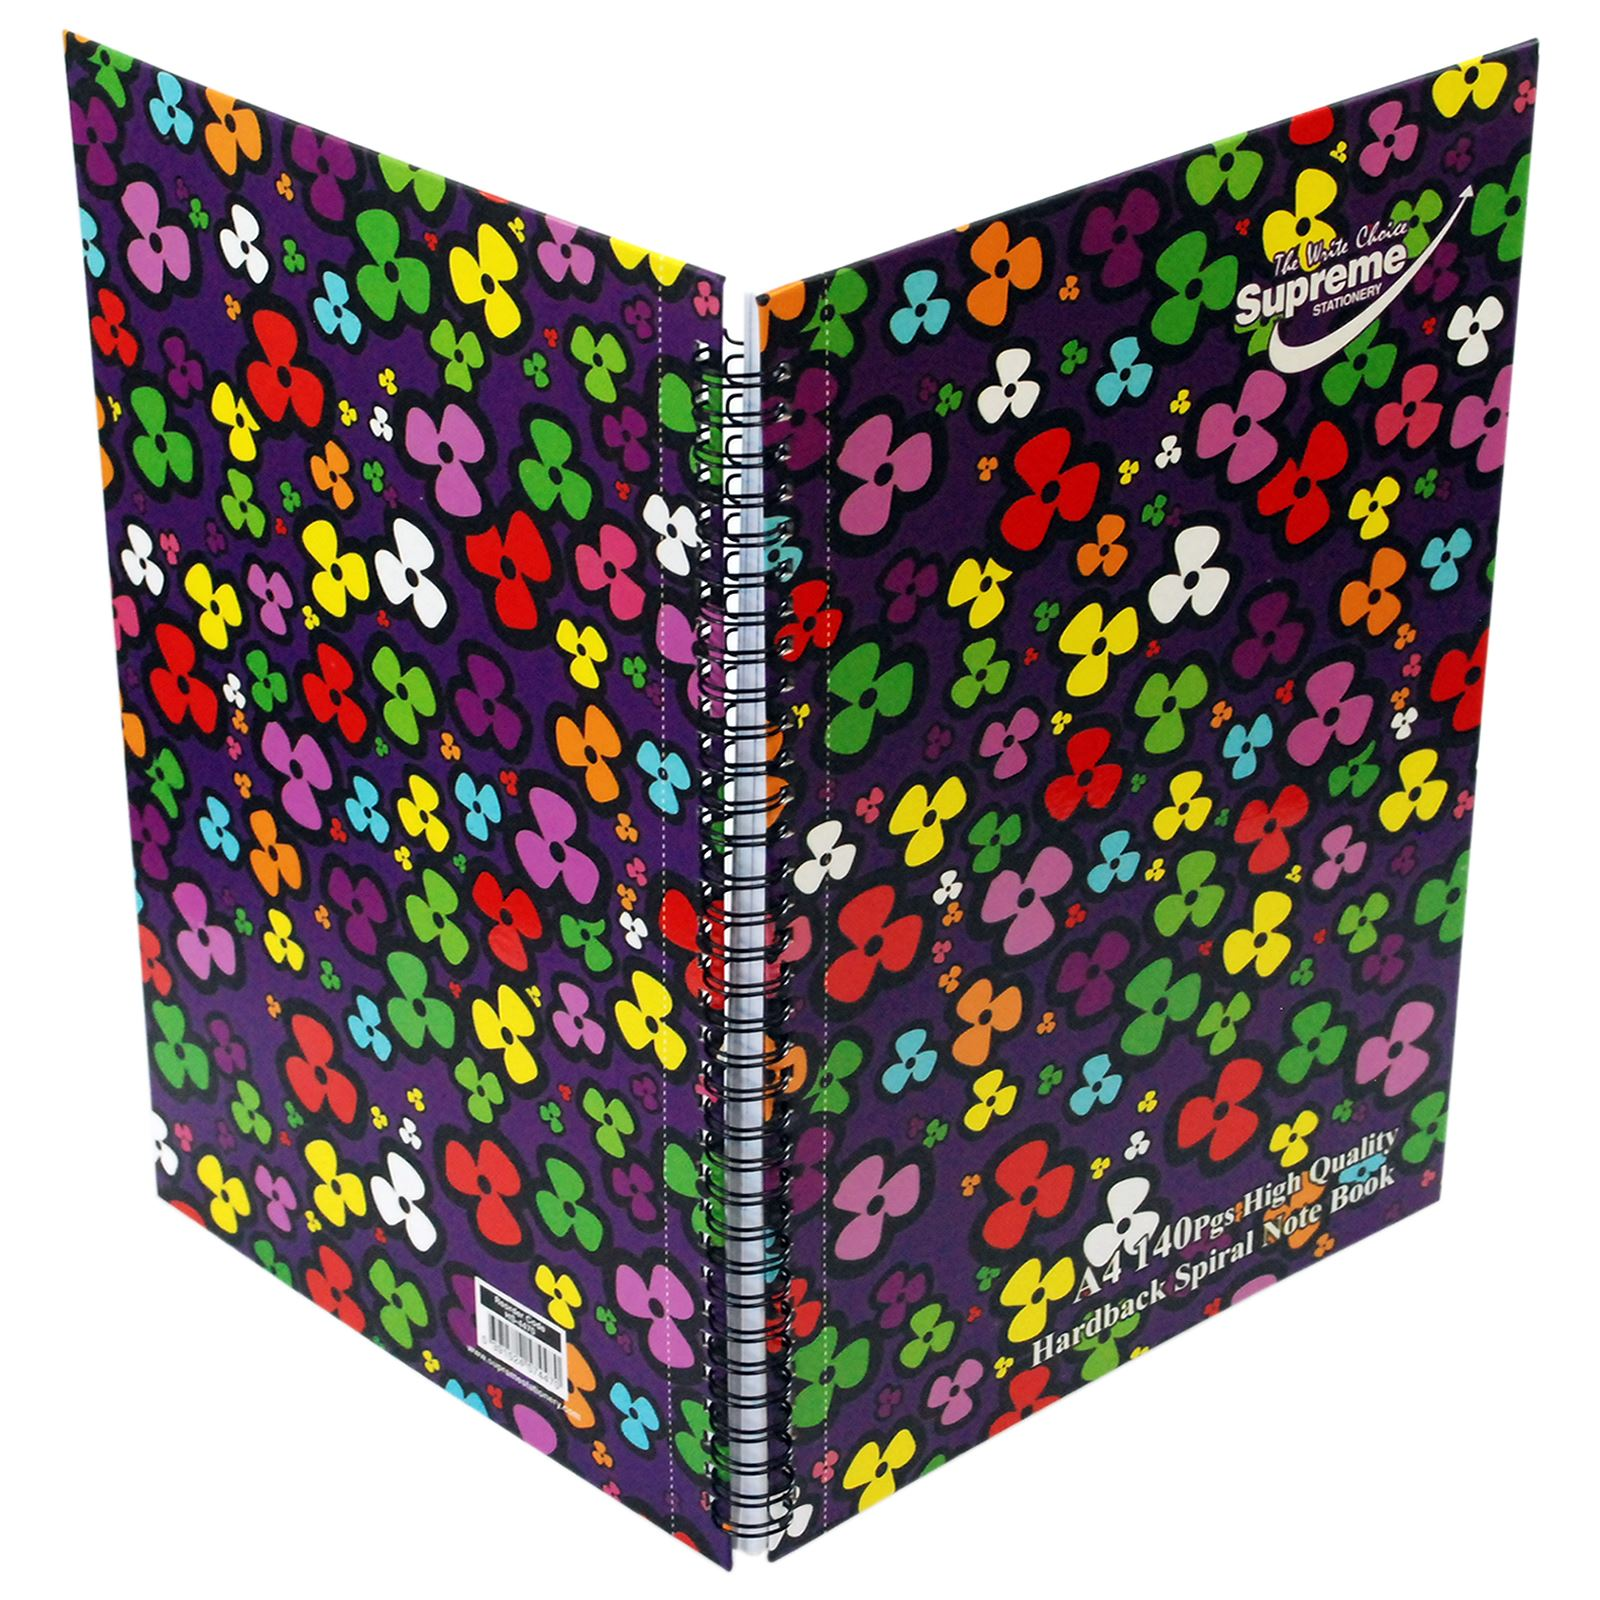 A4 Supreme Hardback Spiral 140 Page Notebook Note Pad School Office Flower